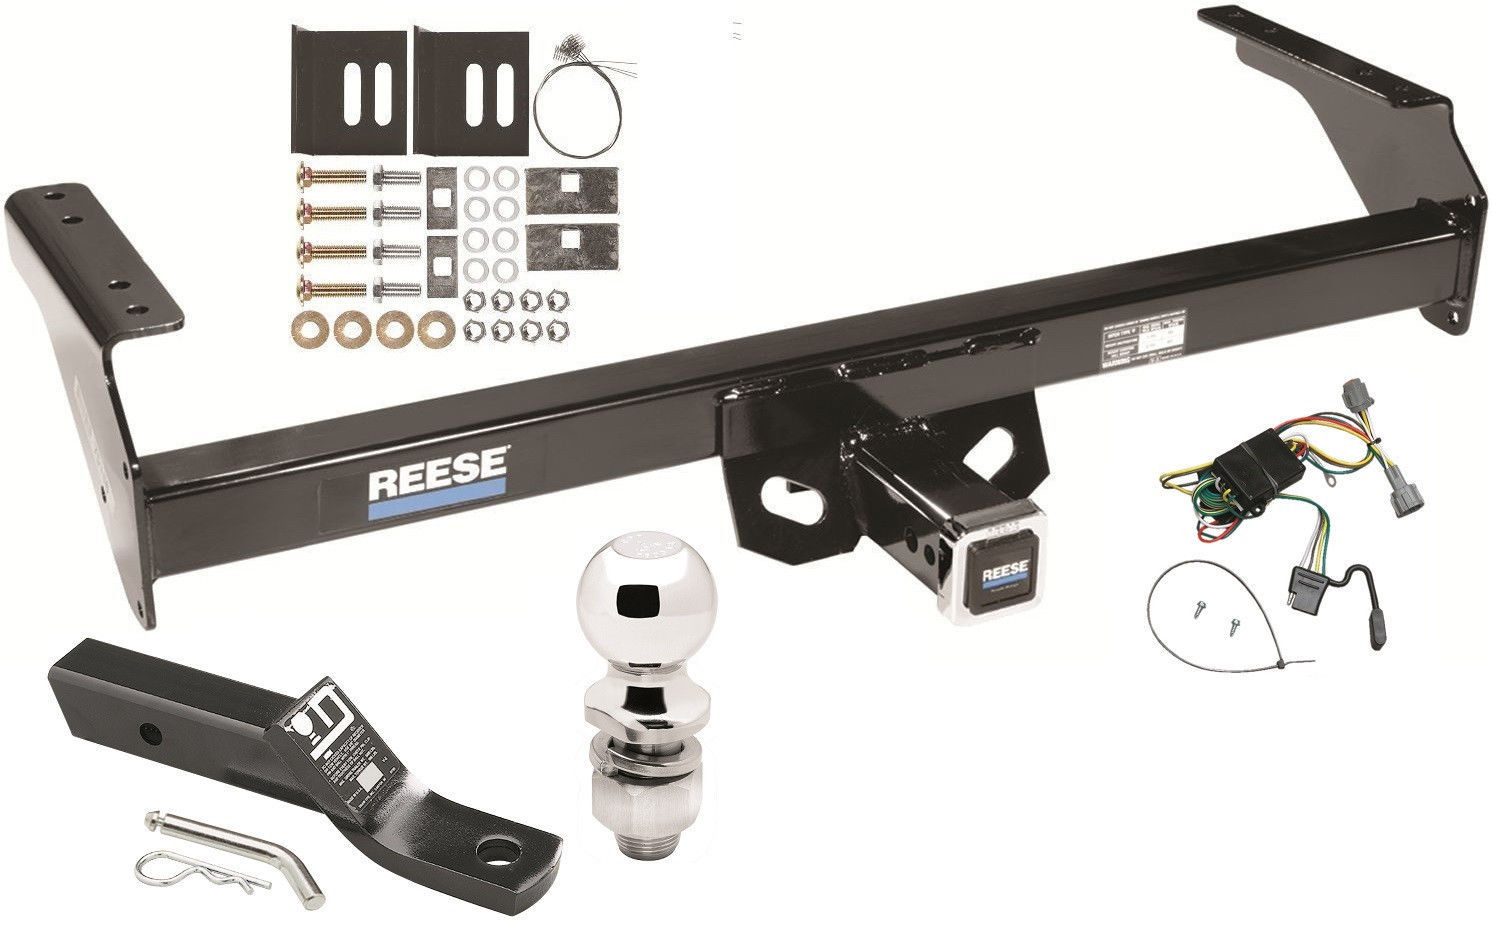 Nissan Frontier Hitch Wiring Kit Data Schema Harness 1998 2004 Complete Trailer Package W Instructions